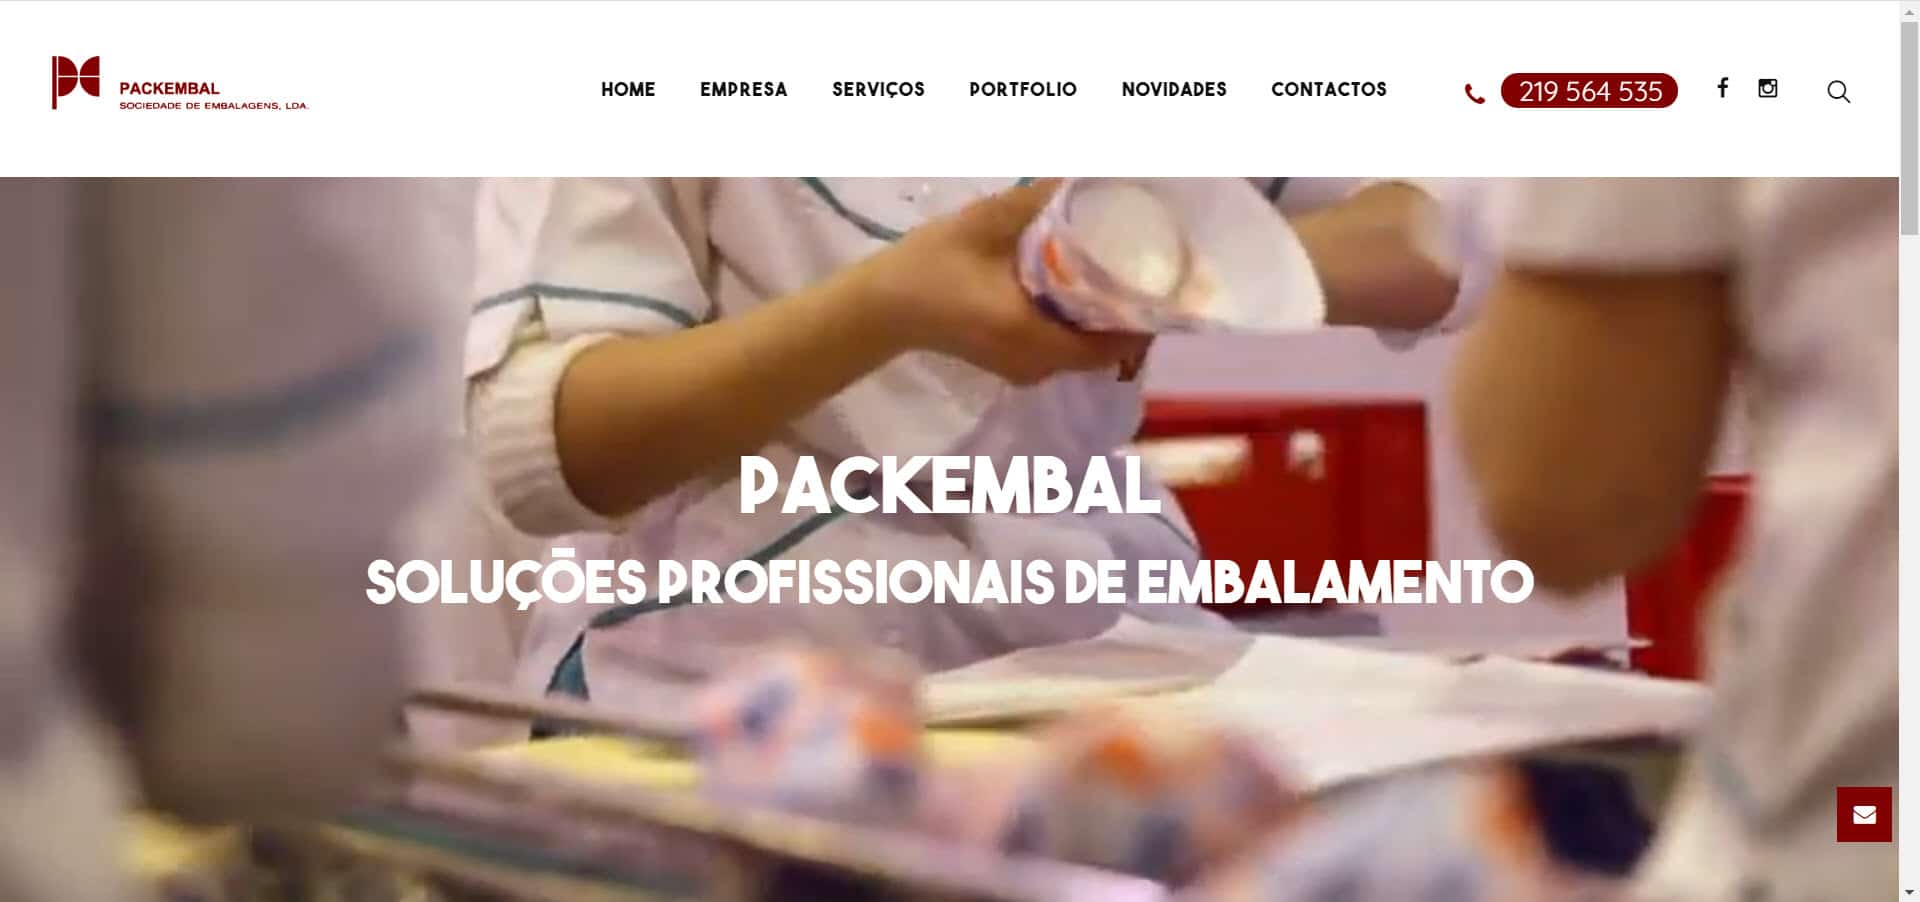 packembal